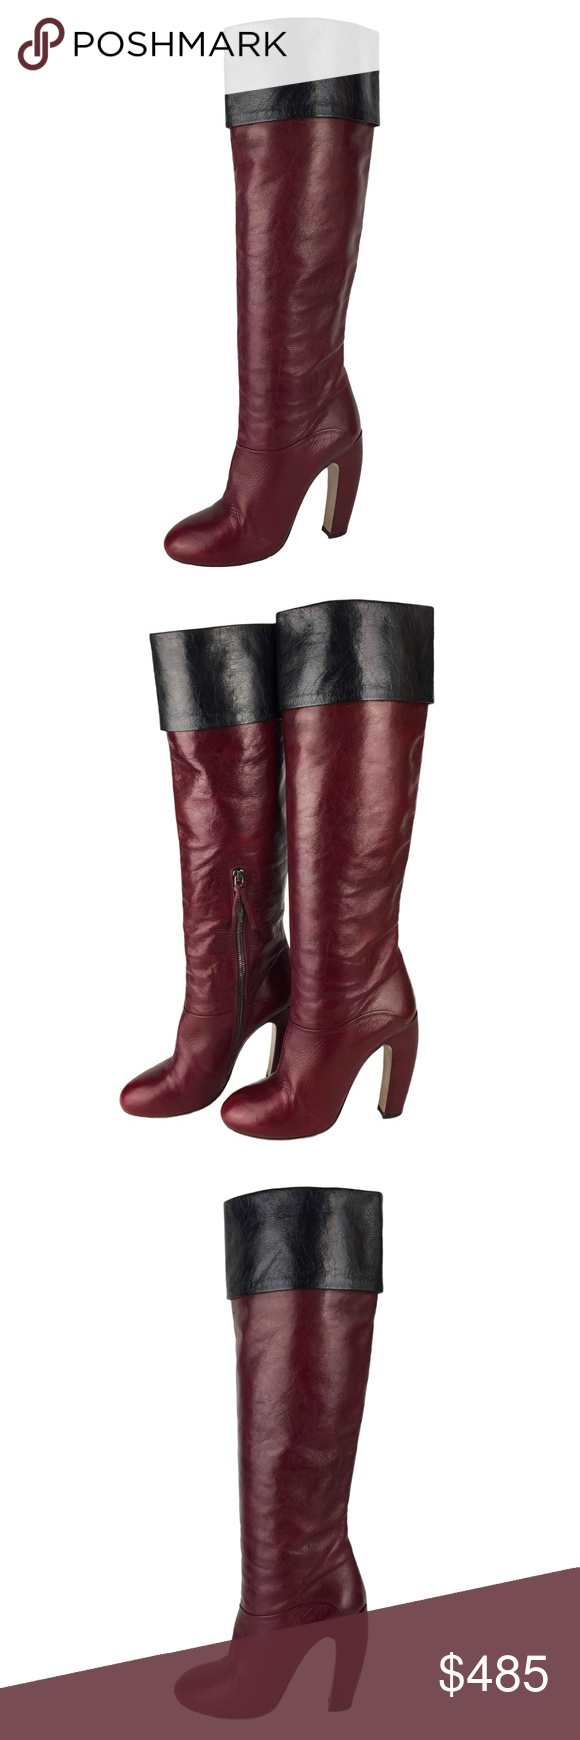 216c21d3adfa Miu Miu Prada Cuffed Knee Leather Boots In Excellent Pre-Owned Condition.  Size 38